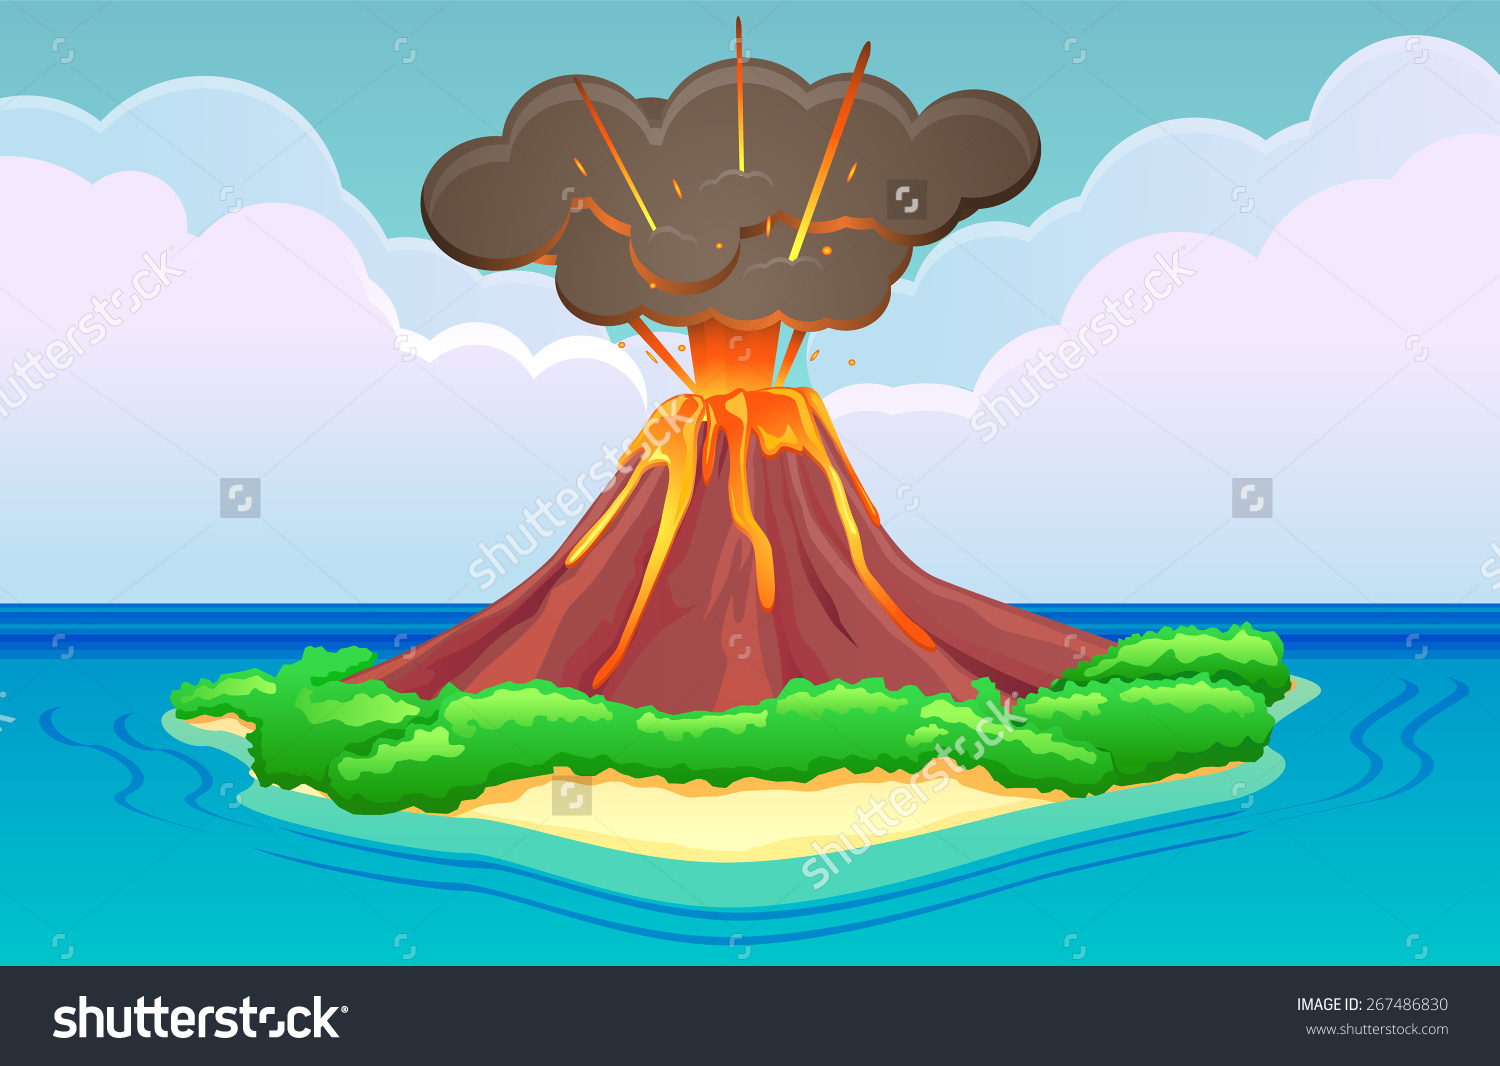 Island Volcano Eruption clipart #11, Download drawings